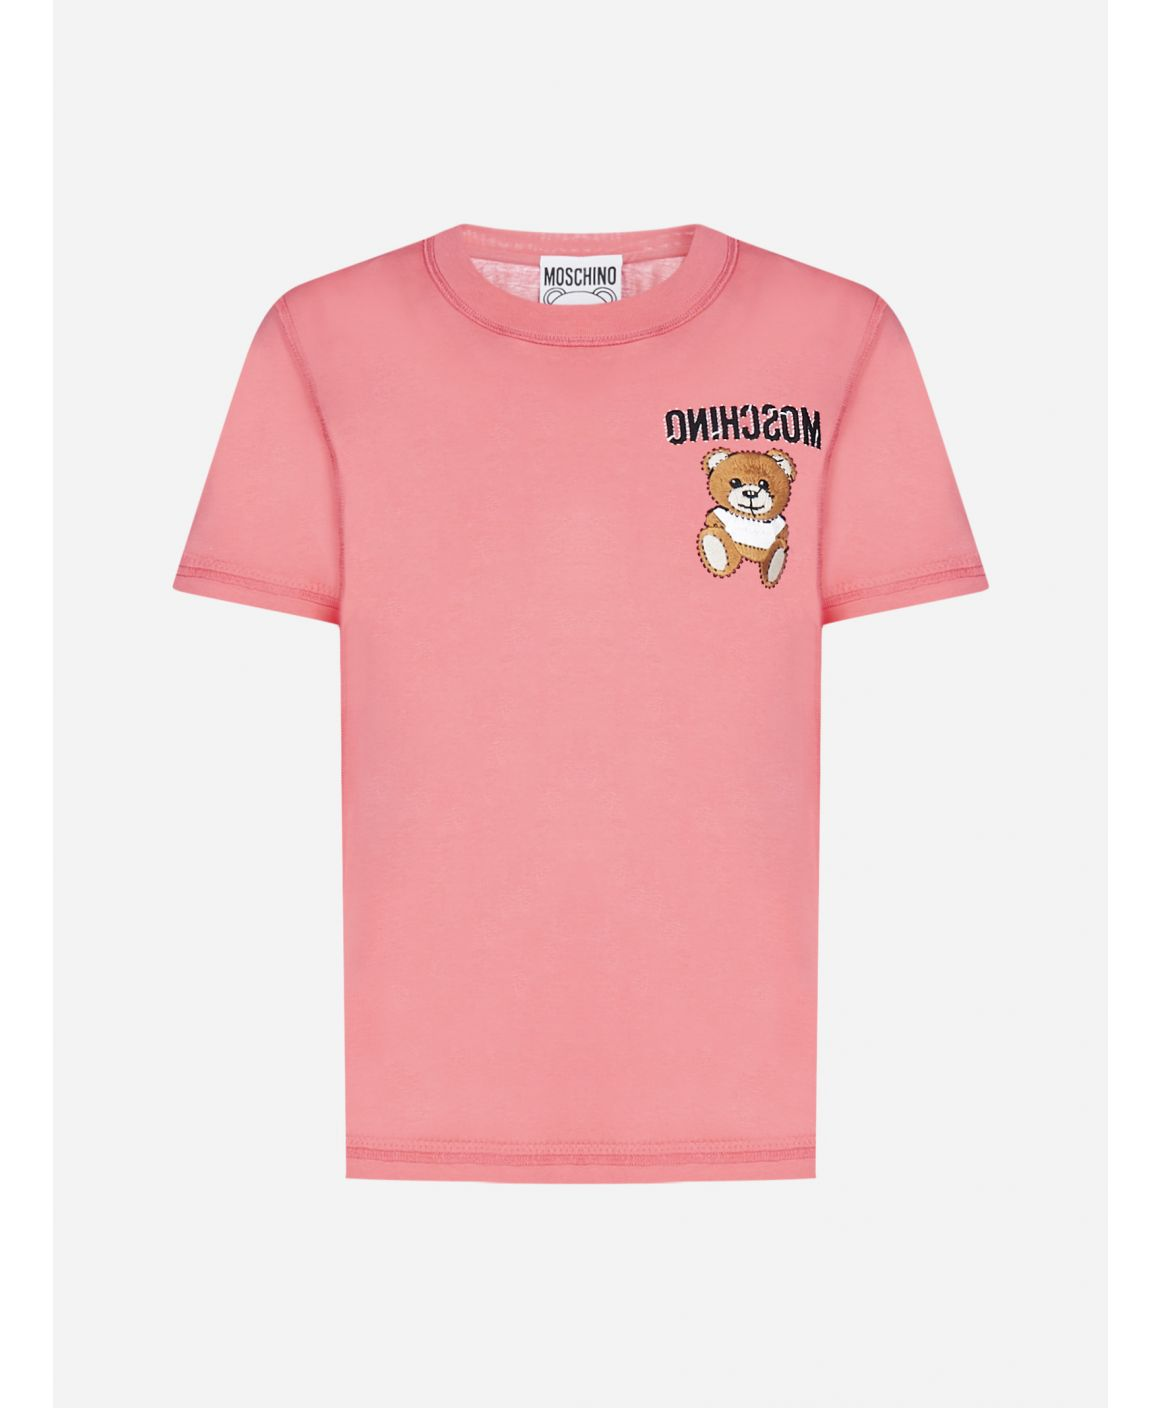 Teddy and logo embroidery cotton t-shirt